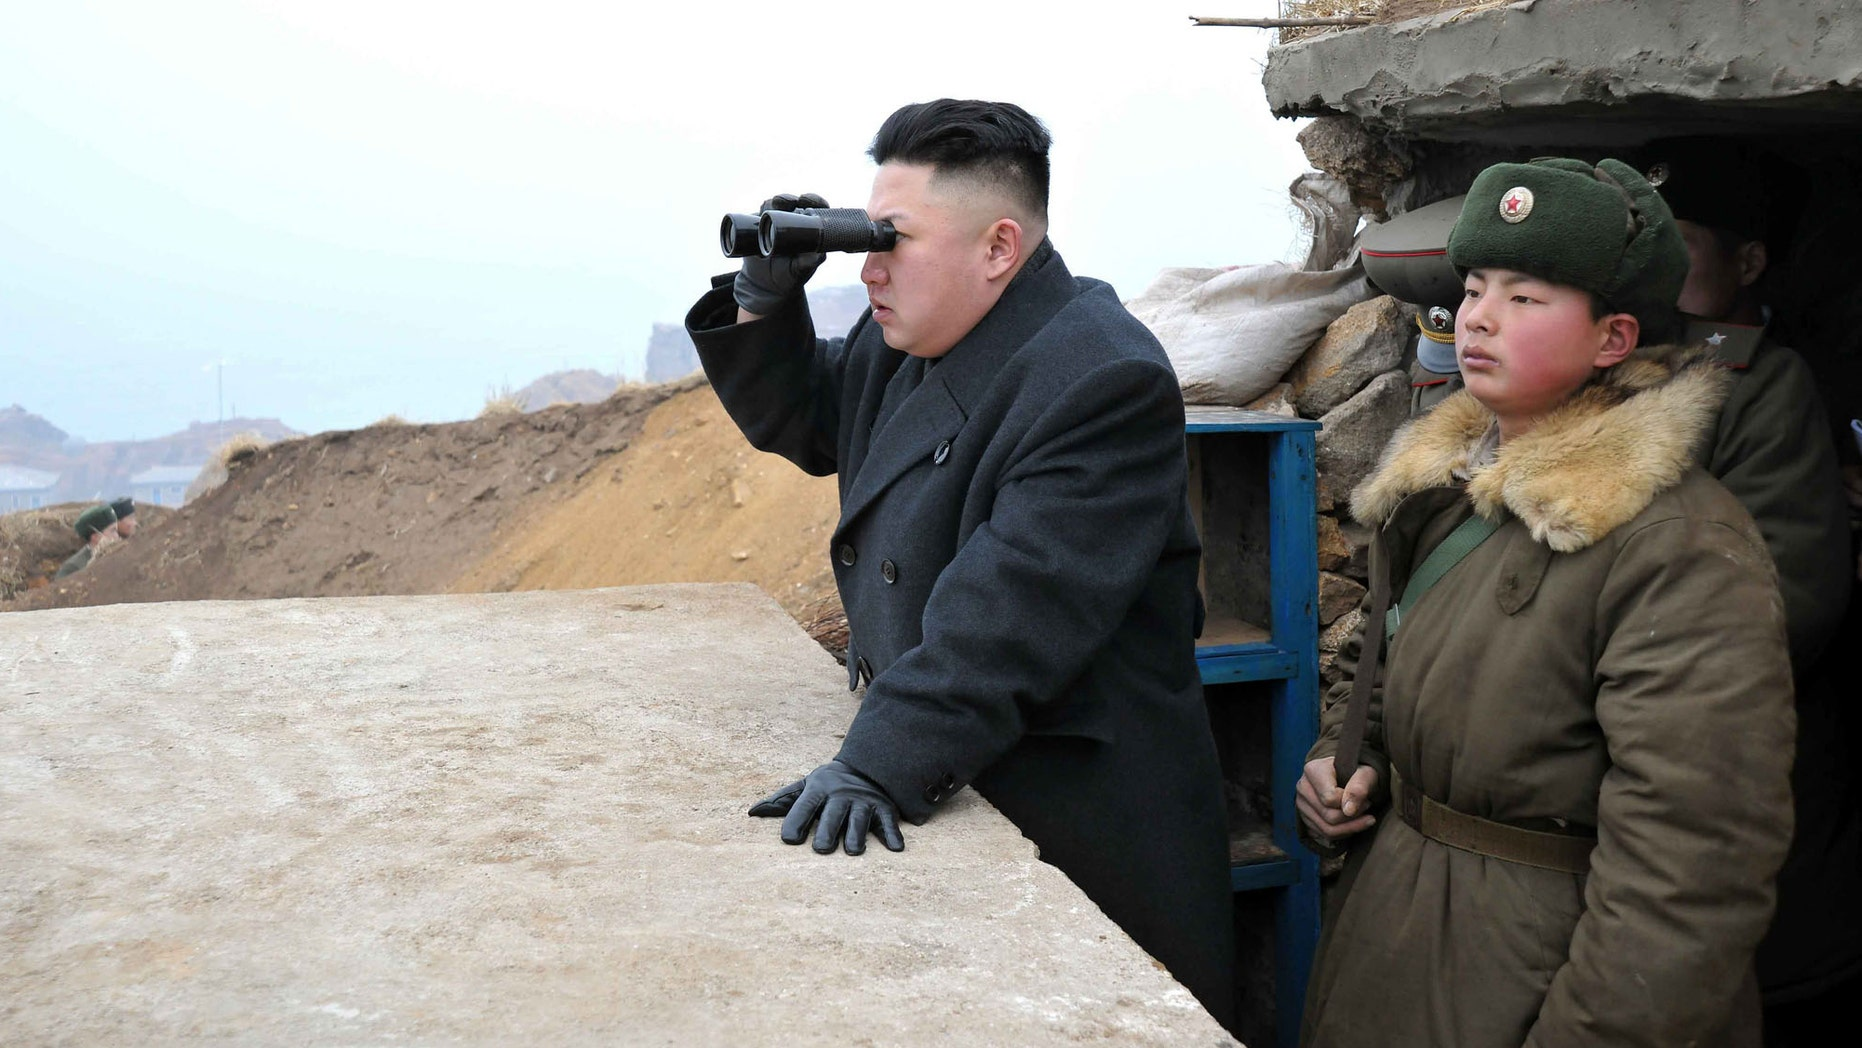 The 33-year-old dictator told his countrymen in January that North Korea is close to possessing the ability to strike around the world.